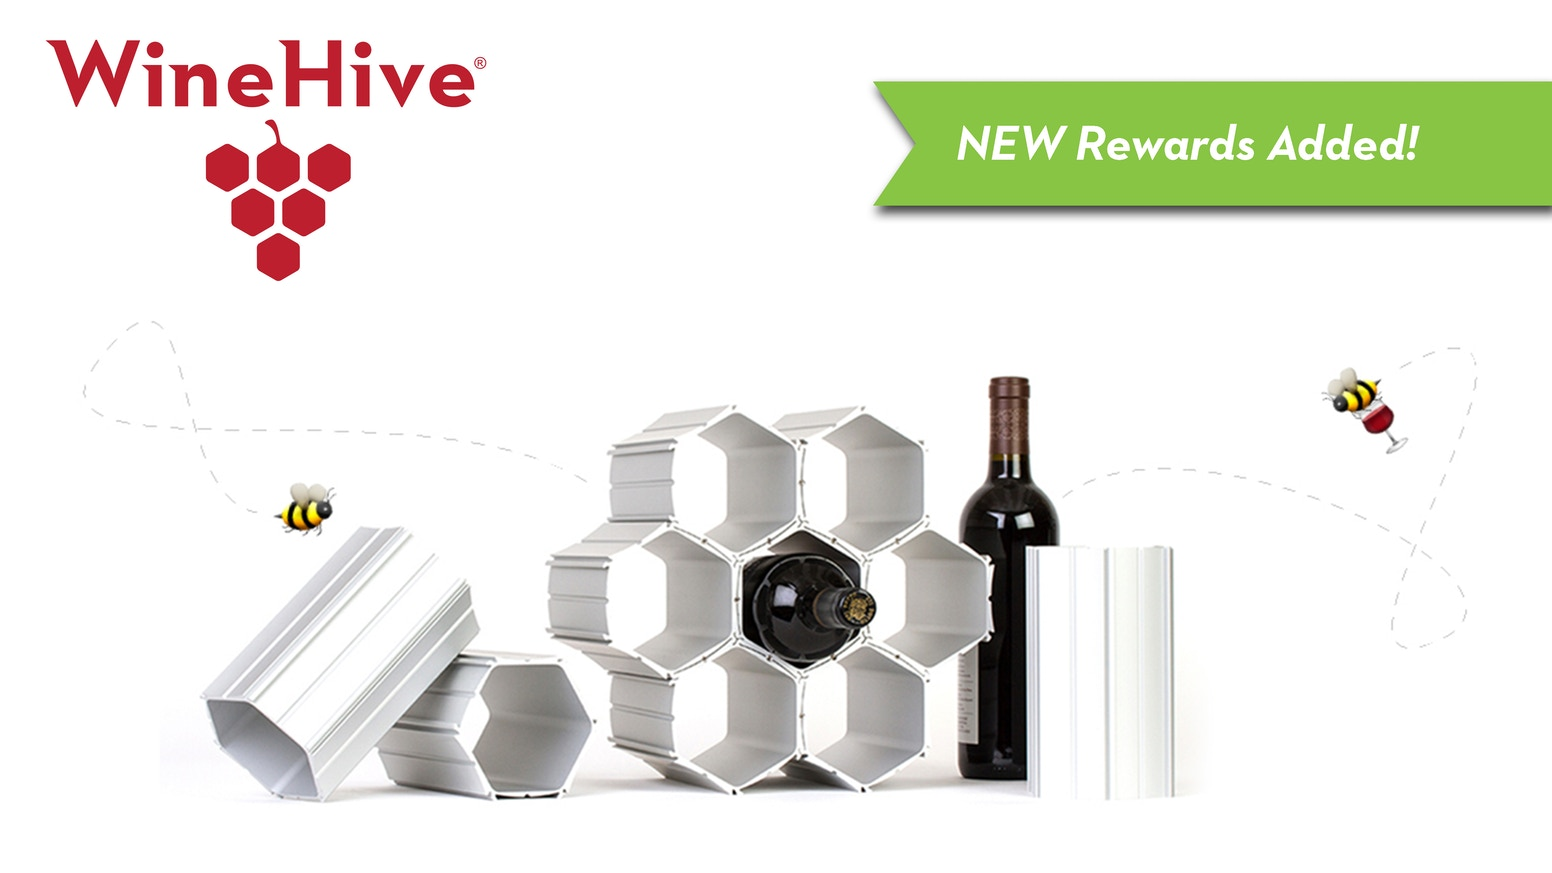 Modular aluminum honeycombs customize to create unique modern wine displays, and expand infinitely as your wine collection grows!